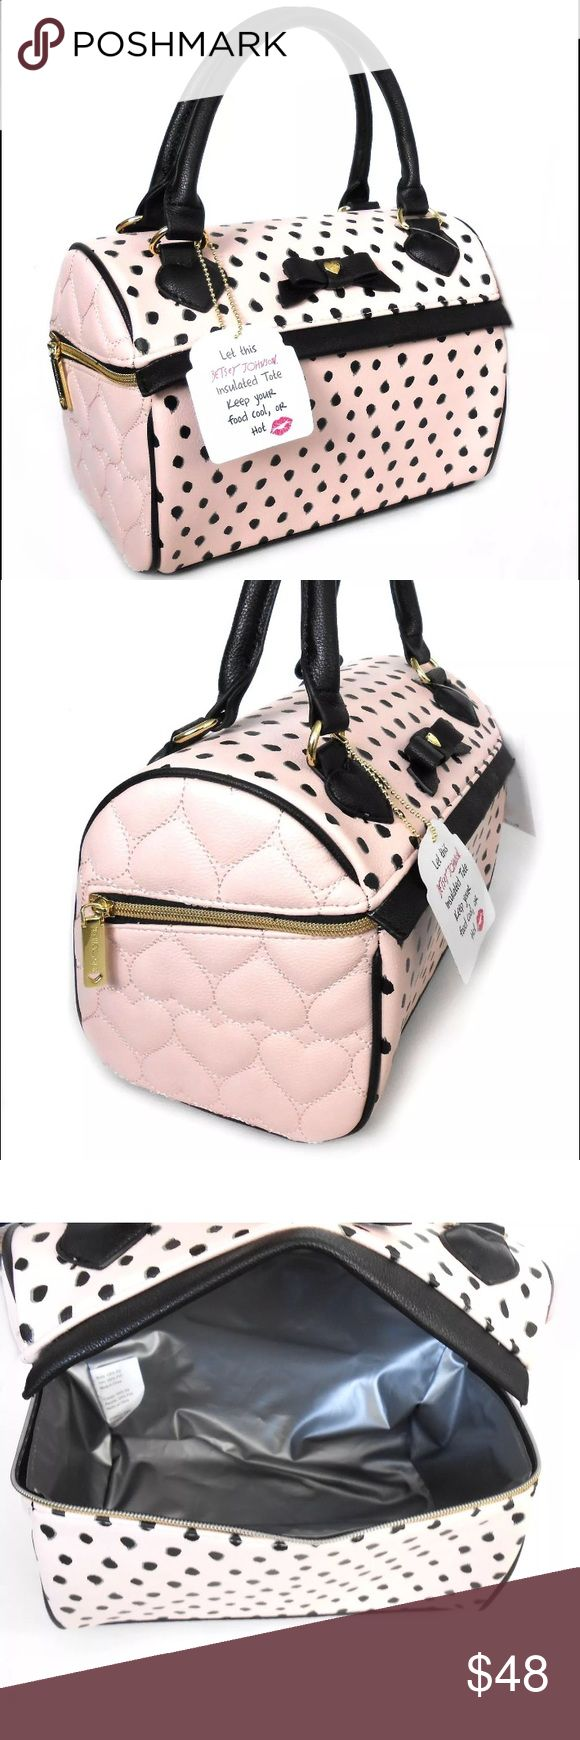 """Pink black B mine speedy lunch tote Betsey Johnson Betsey Johnson insulated lunch tote, Style: BBLT075  Color: Black, soft pink  Material: Synthetic (faux leather)   Features: Insulated zippered compartment, top handle, bow with small gold tone heart with engraved XOX Betsey logo, gold tone zipper pull with engraved Betsey Johnson logo  Measurements: 11"""" wide x 8"""" high x 7"""" deep Betsey Johnson Bags Totes"""